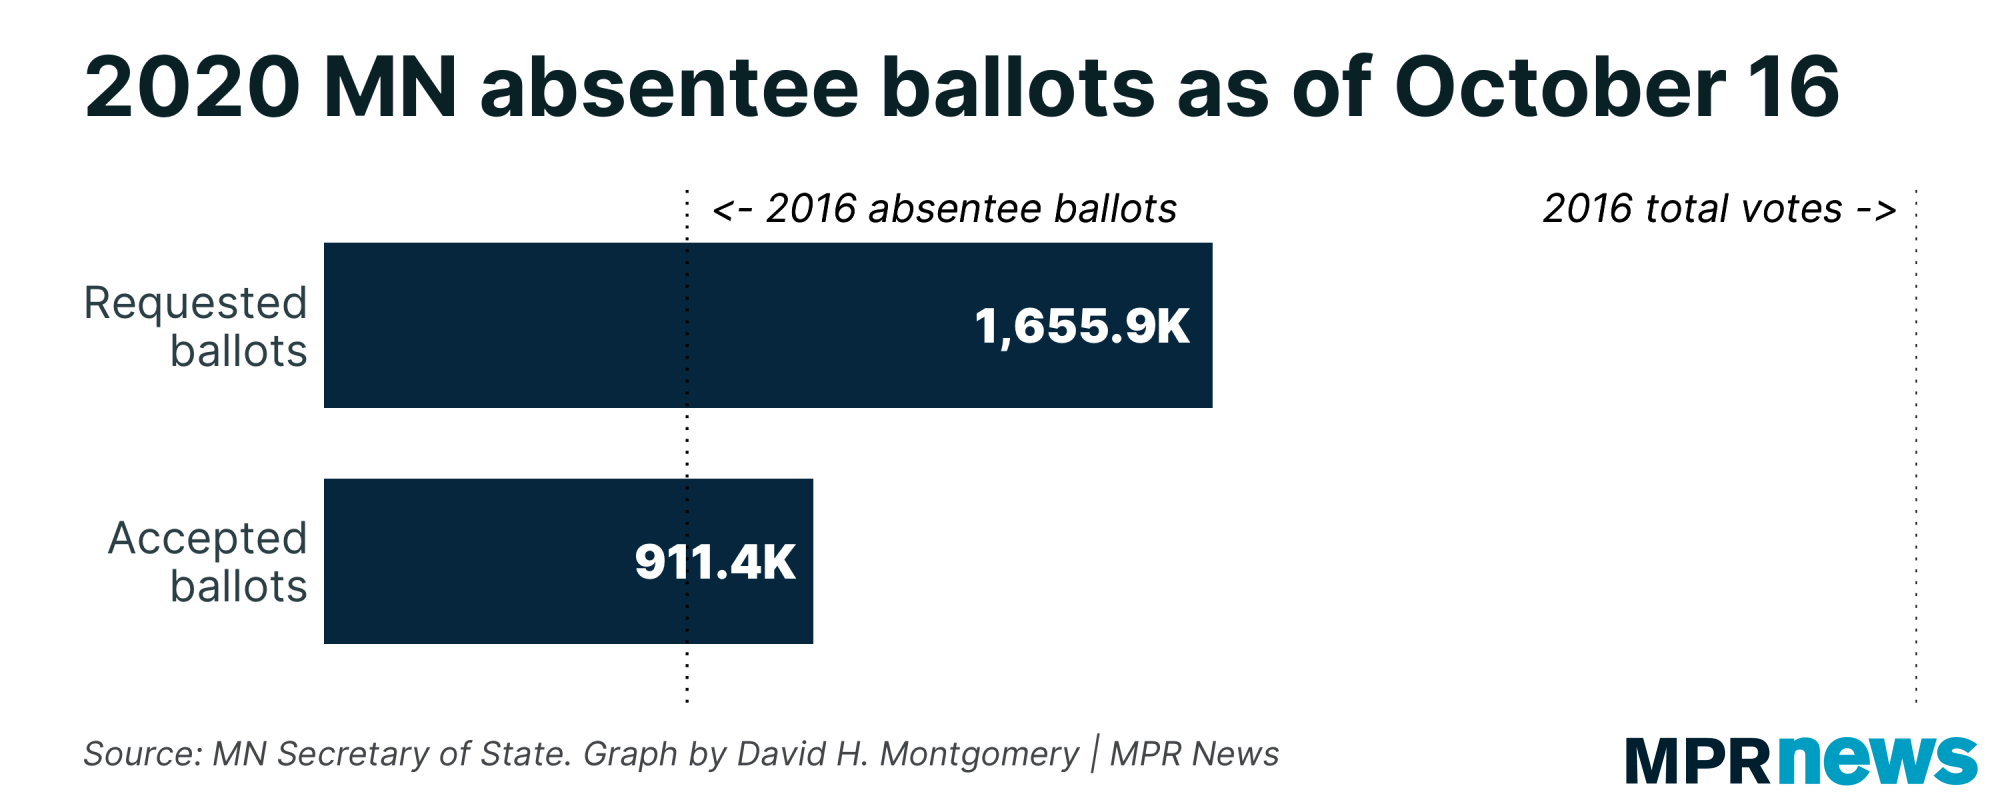 Absentee ballots requested and accepted as of Oct. 16